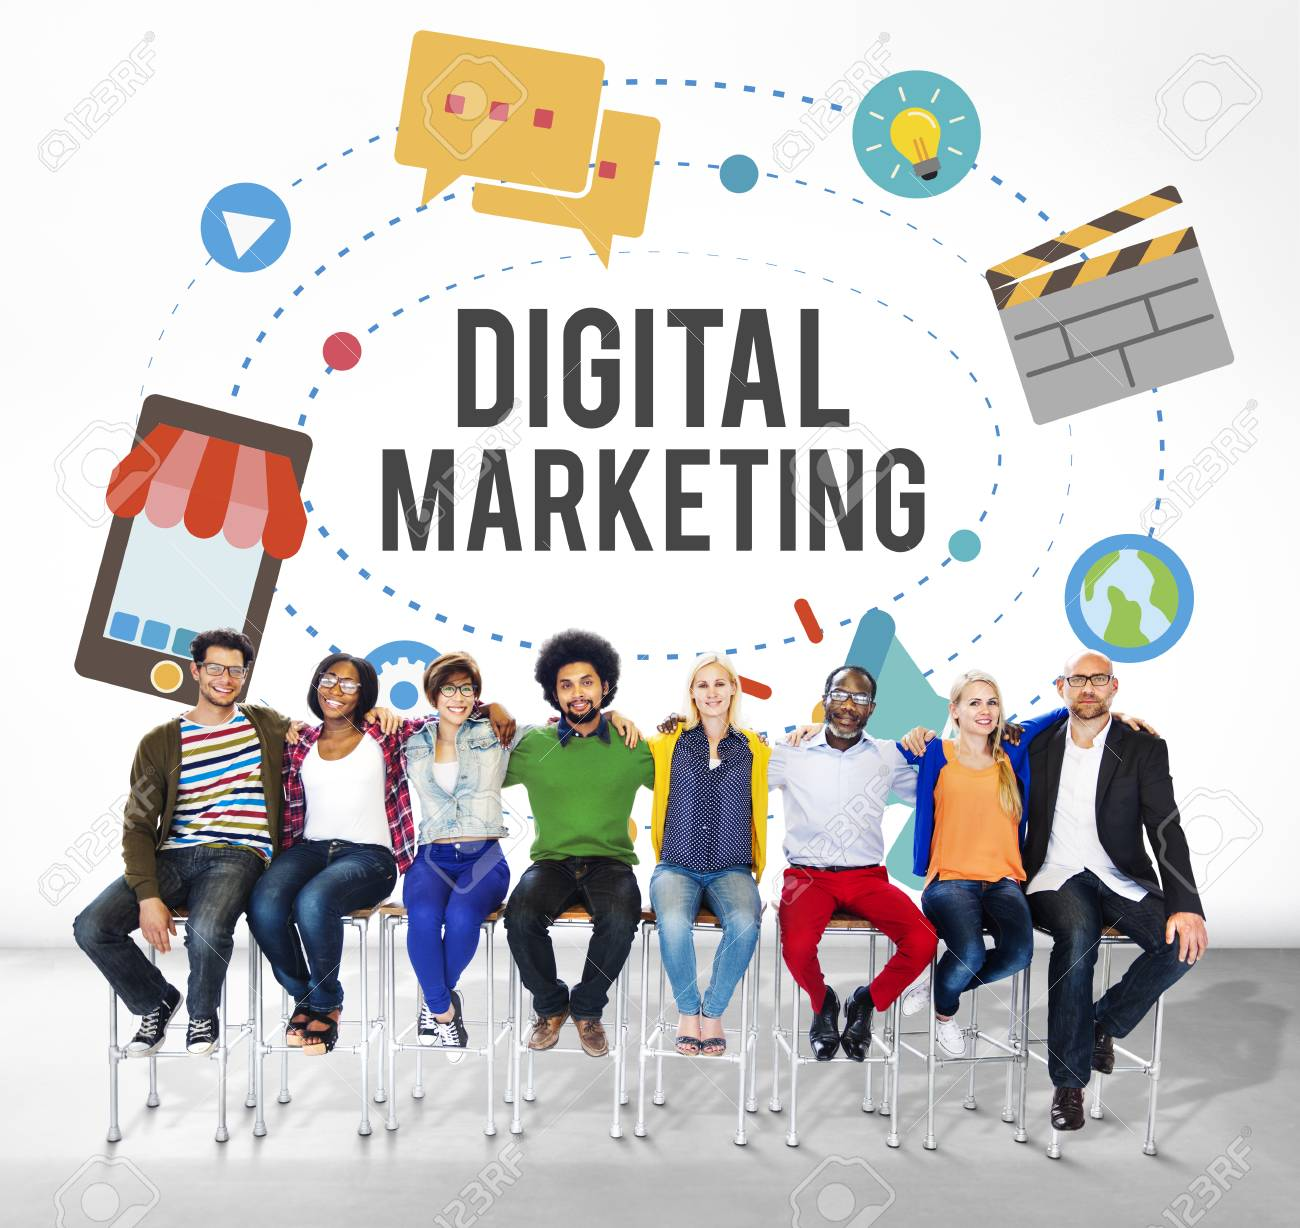 People Sitting With The Word DIGITAL MARKETING Stock Photo, Picture And  Royalty Free Image. Image 109039357.